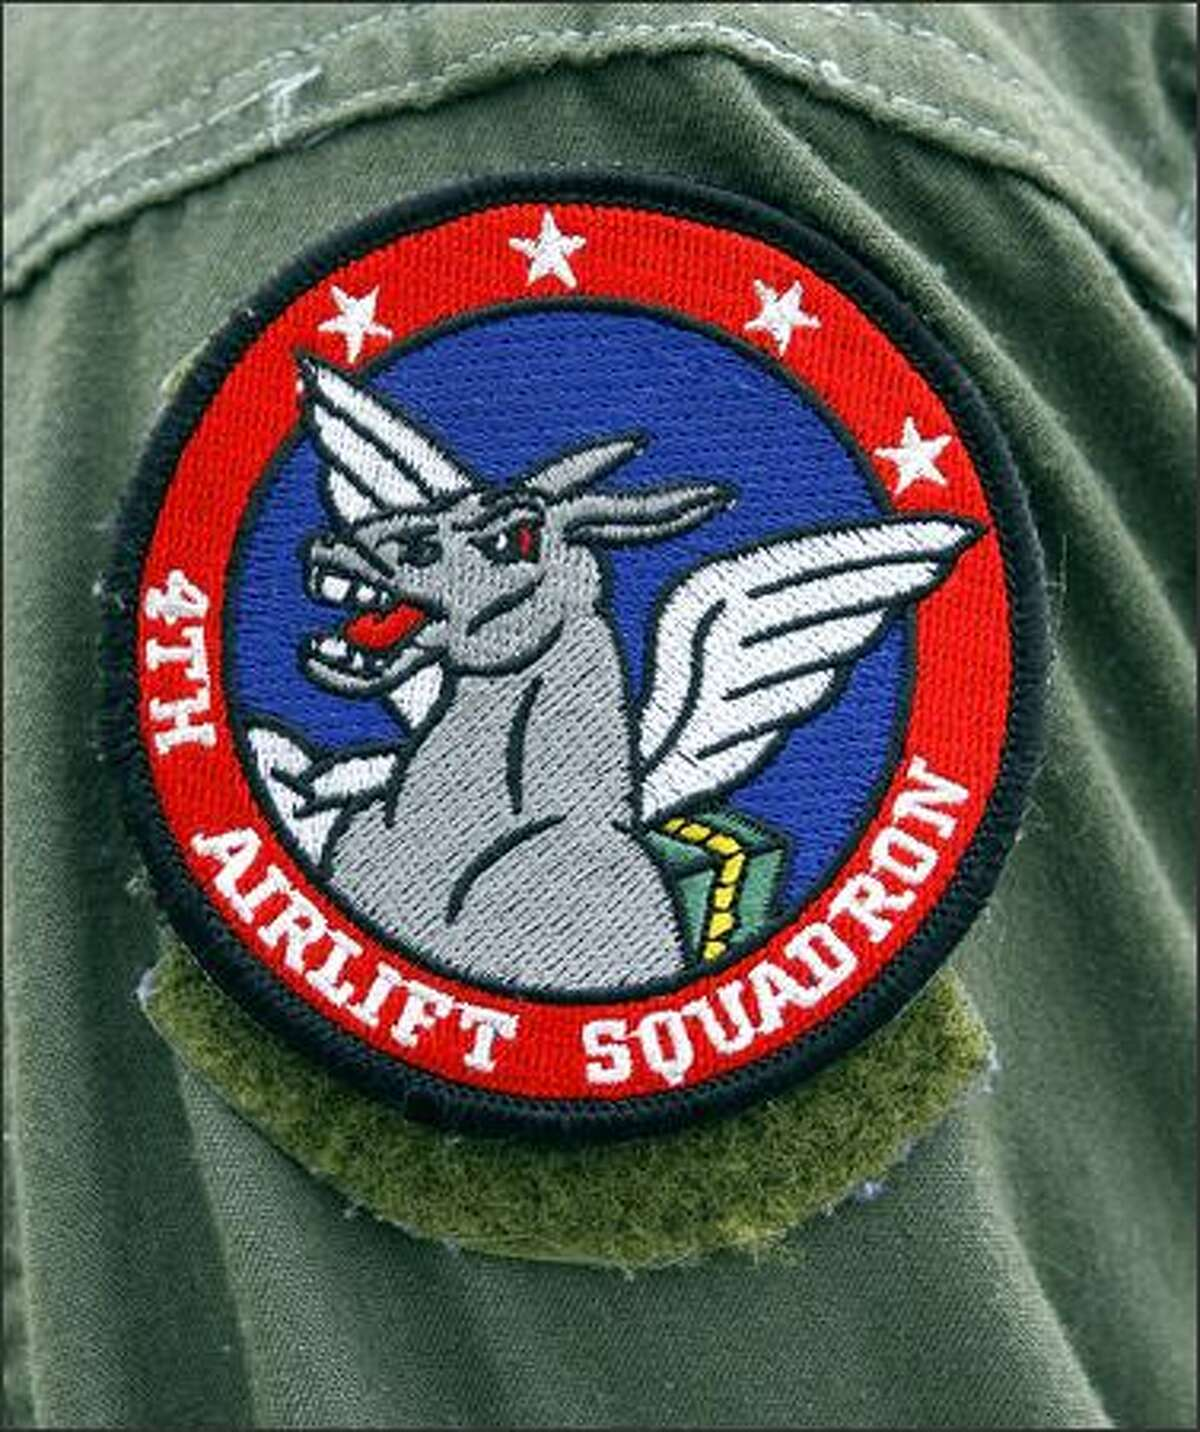 Arm patch of the 4th airlift squadron.